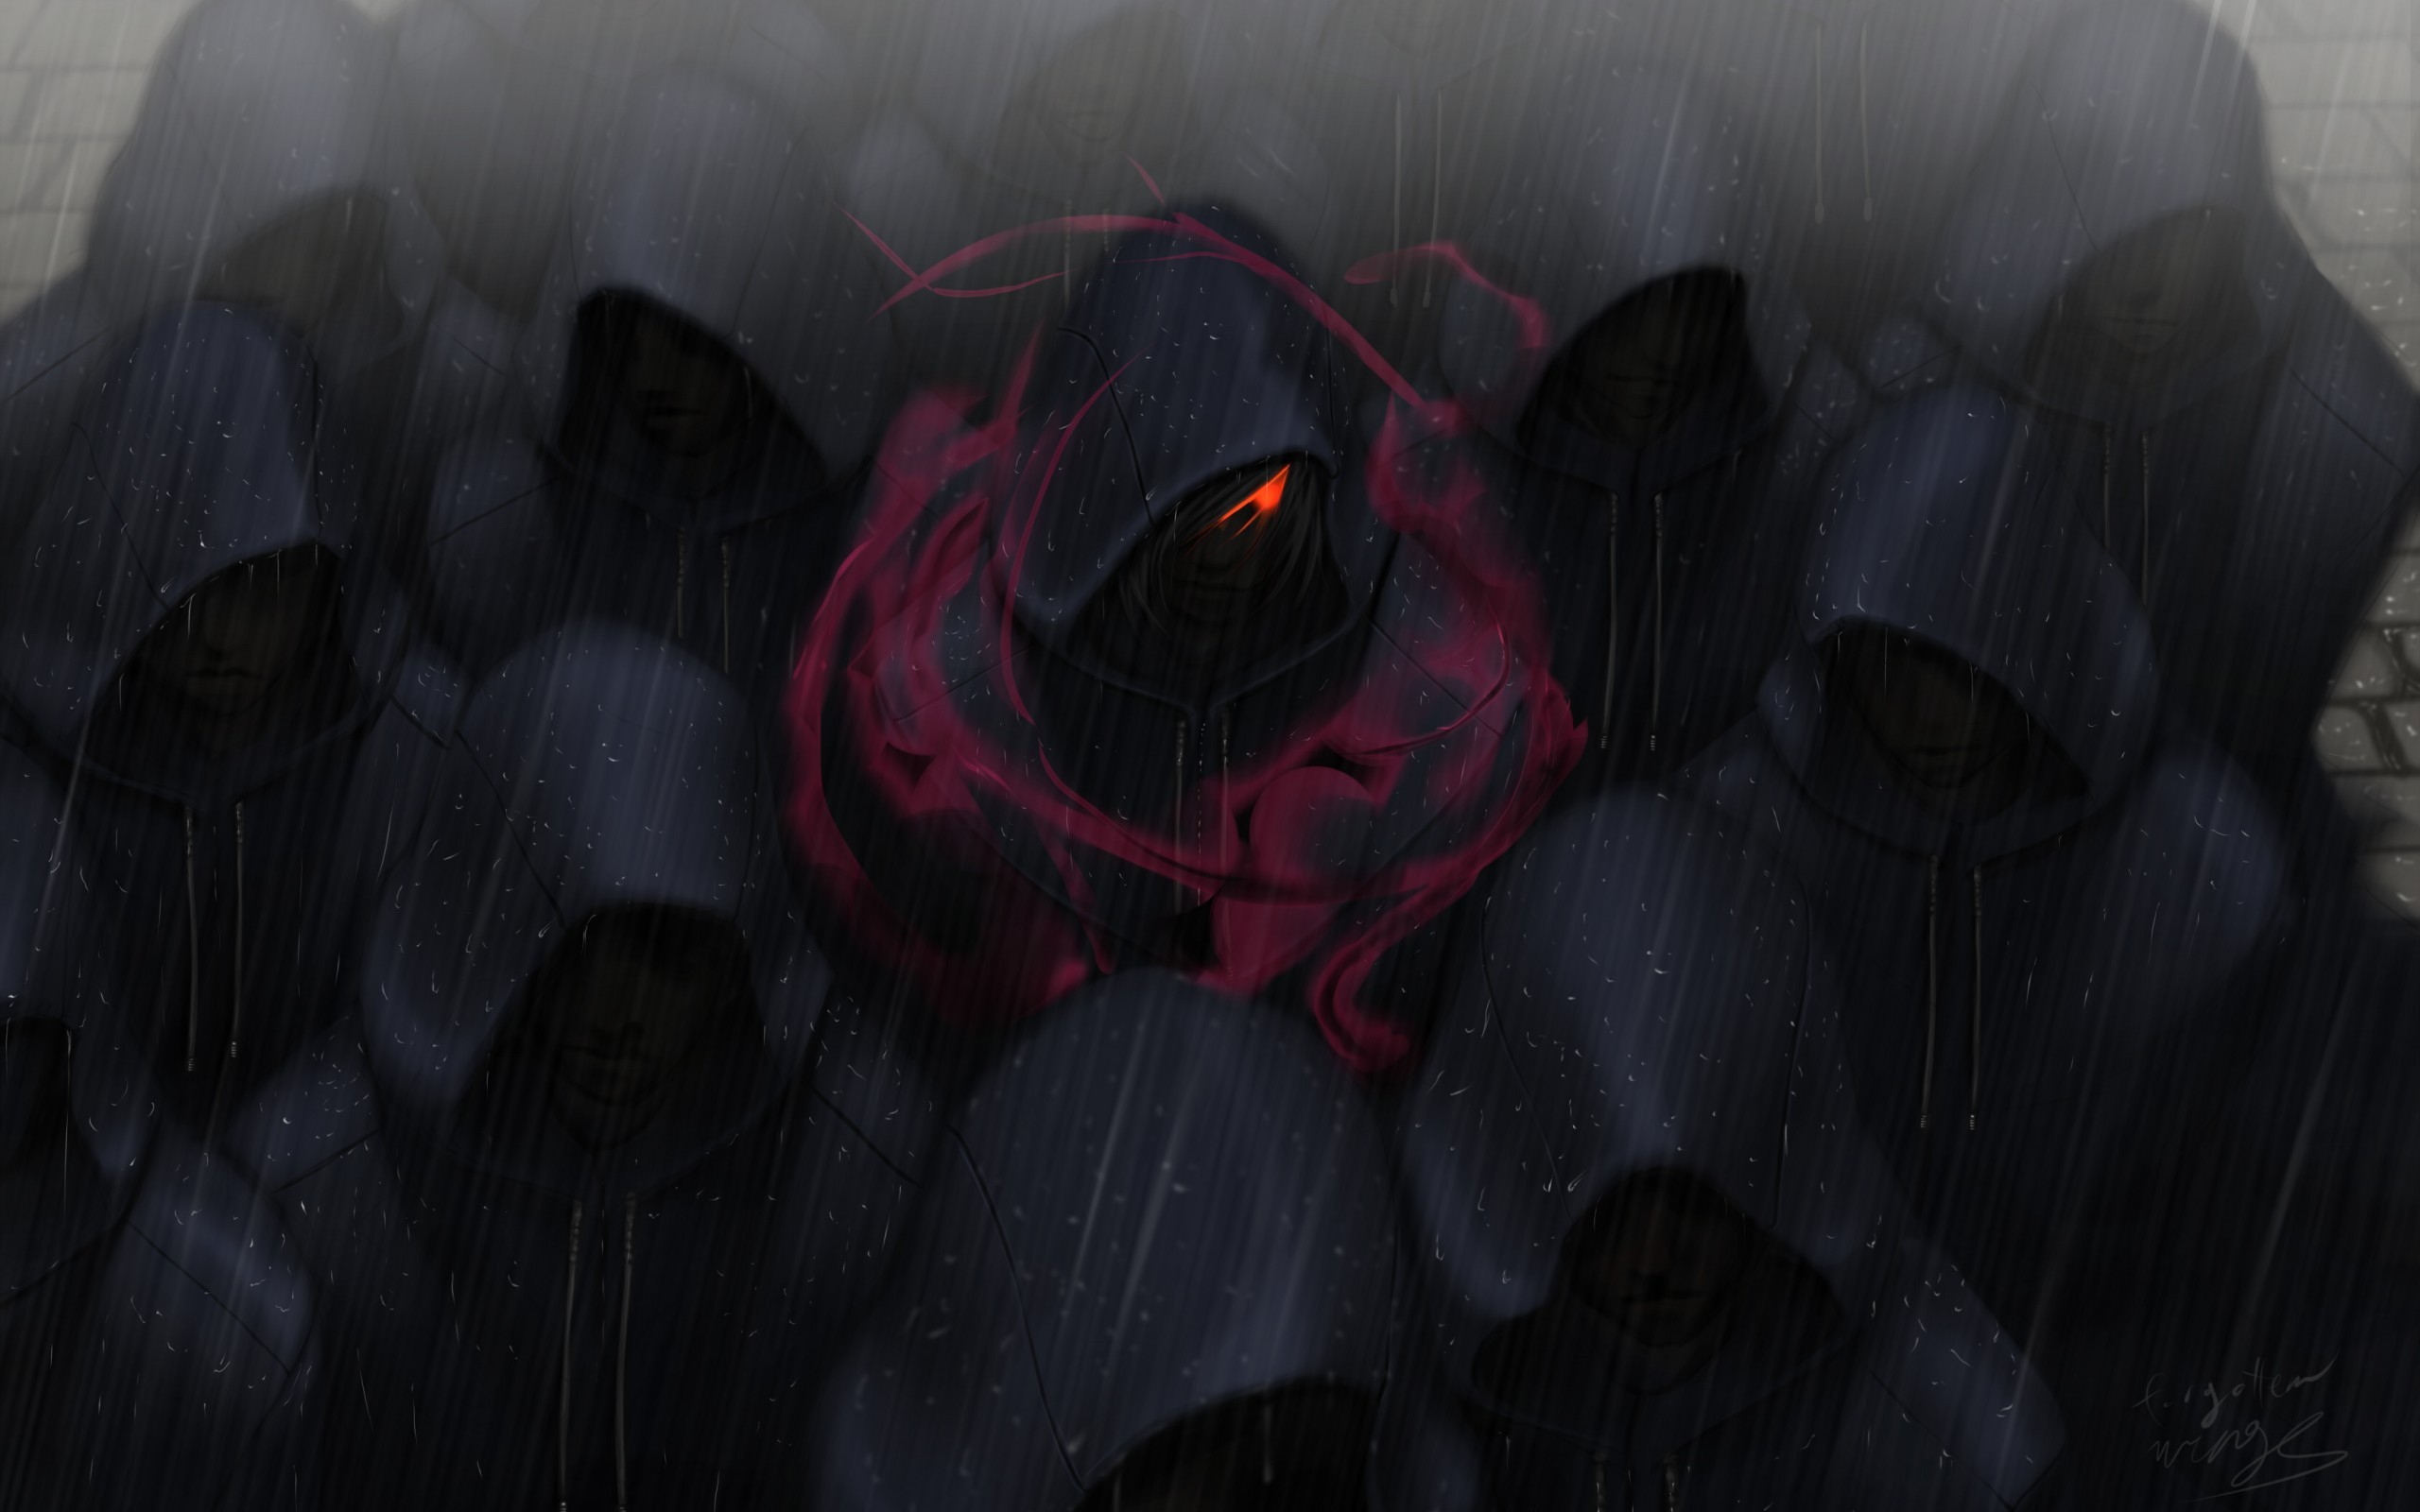 2560x1080 Red Eyes Crowds Rain Hoods 2560x1080 Resolution Hd